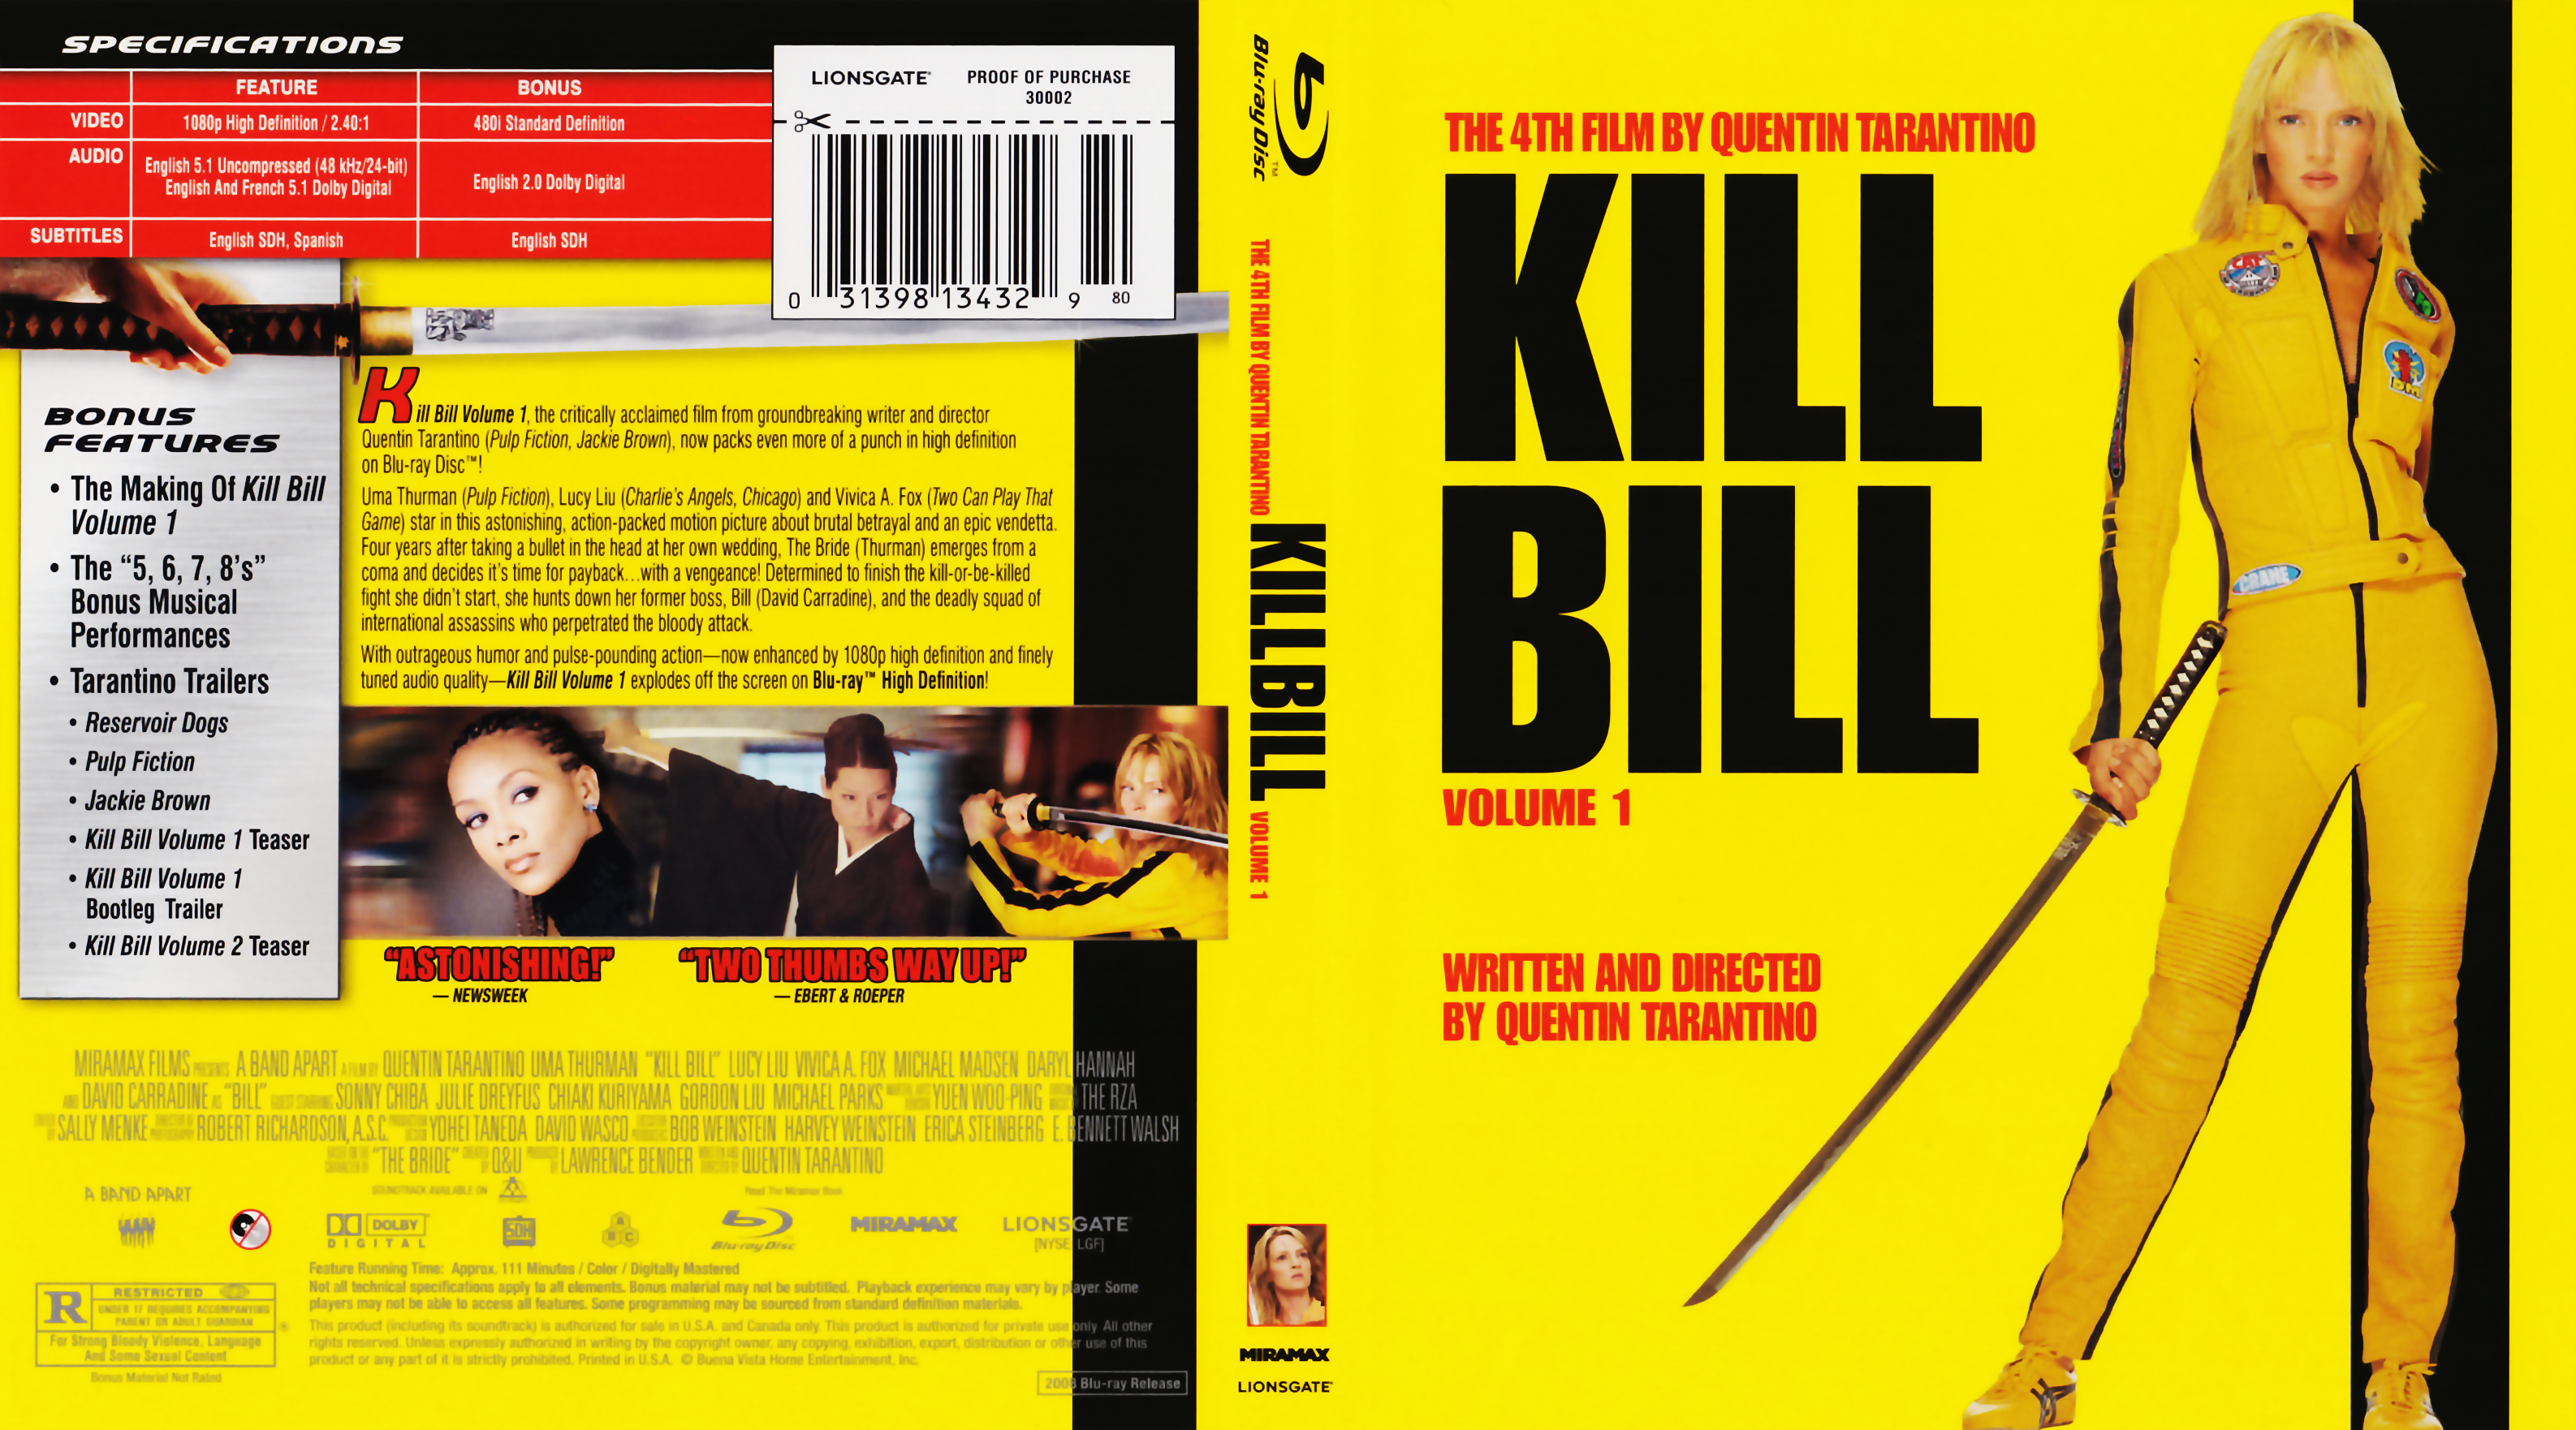 Kill Bill Volume 1 2003 Blu Ray Covers Cover Century Over 500 000 Album Art Covers For Free